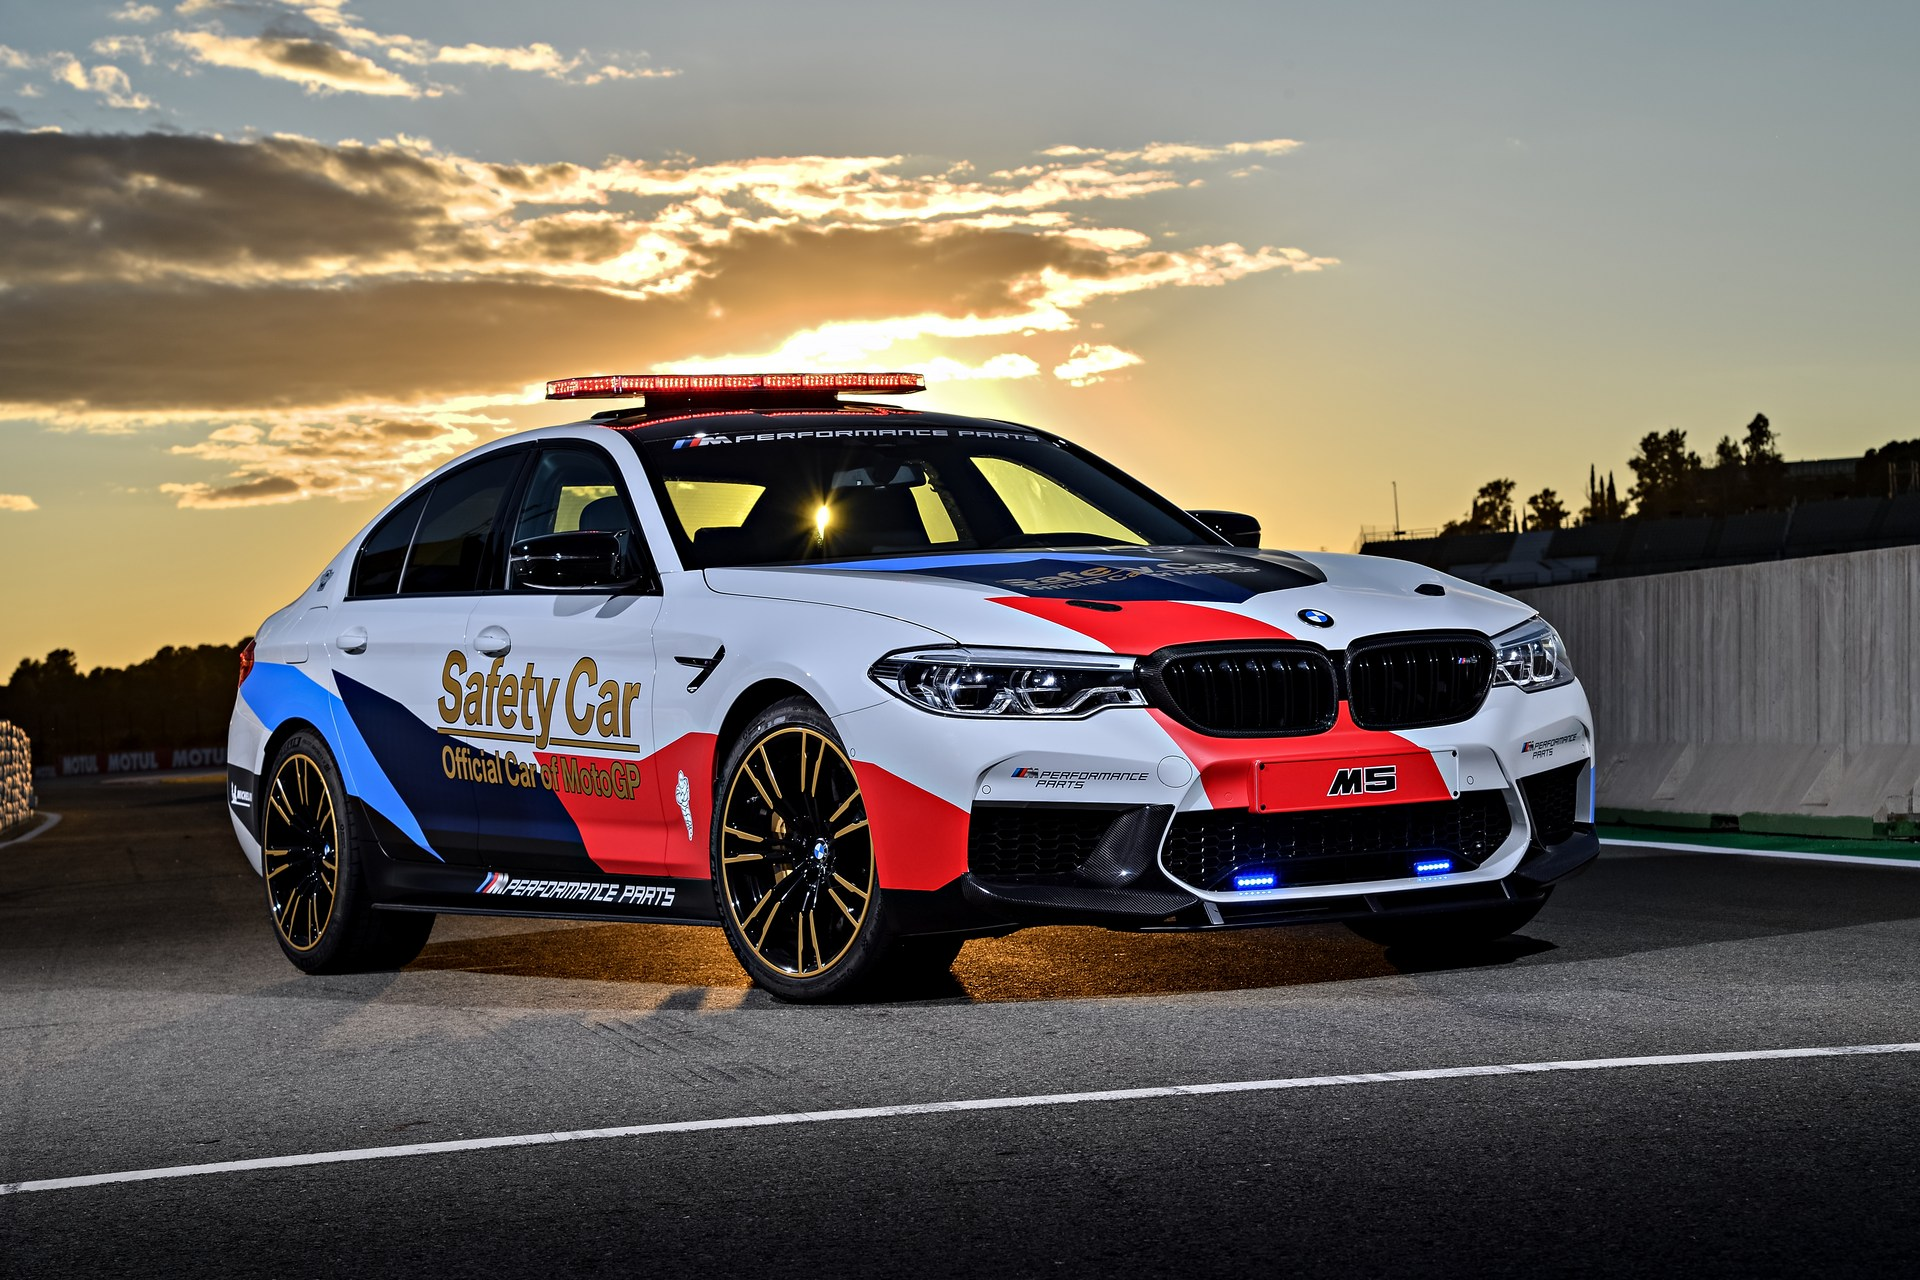 BMW_M5_Safety_Car_0010